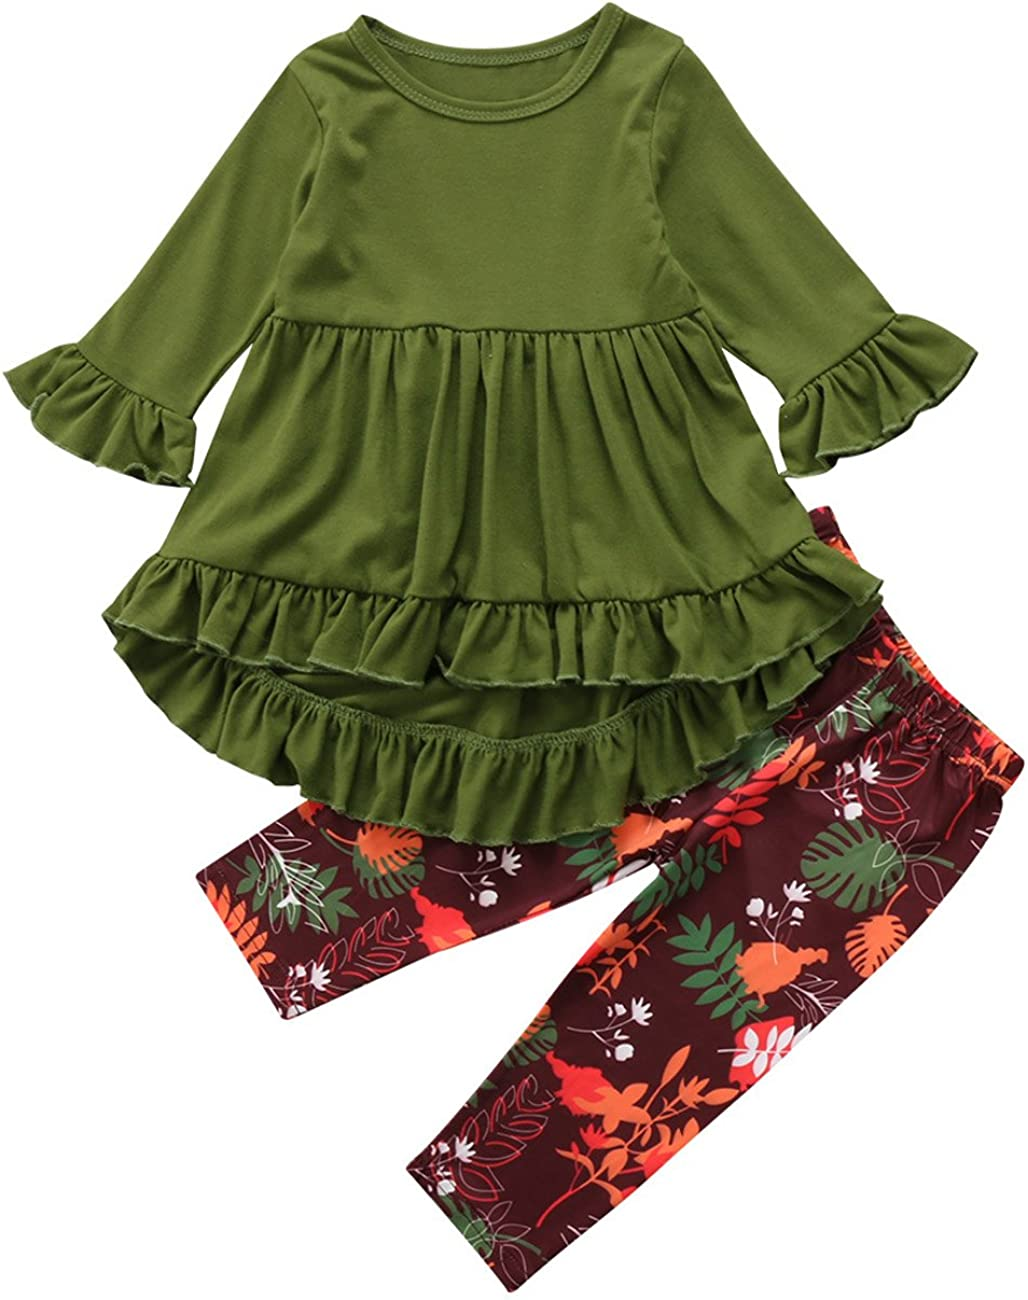 Toddler Little Girls Hi Lo Ruffle Dress Top Floral Max Super intense SALE 49% OFF Tunic Flare L